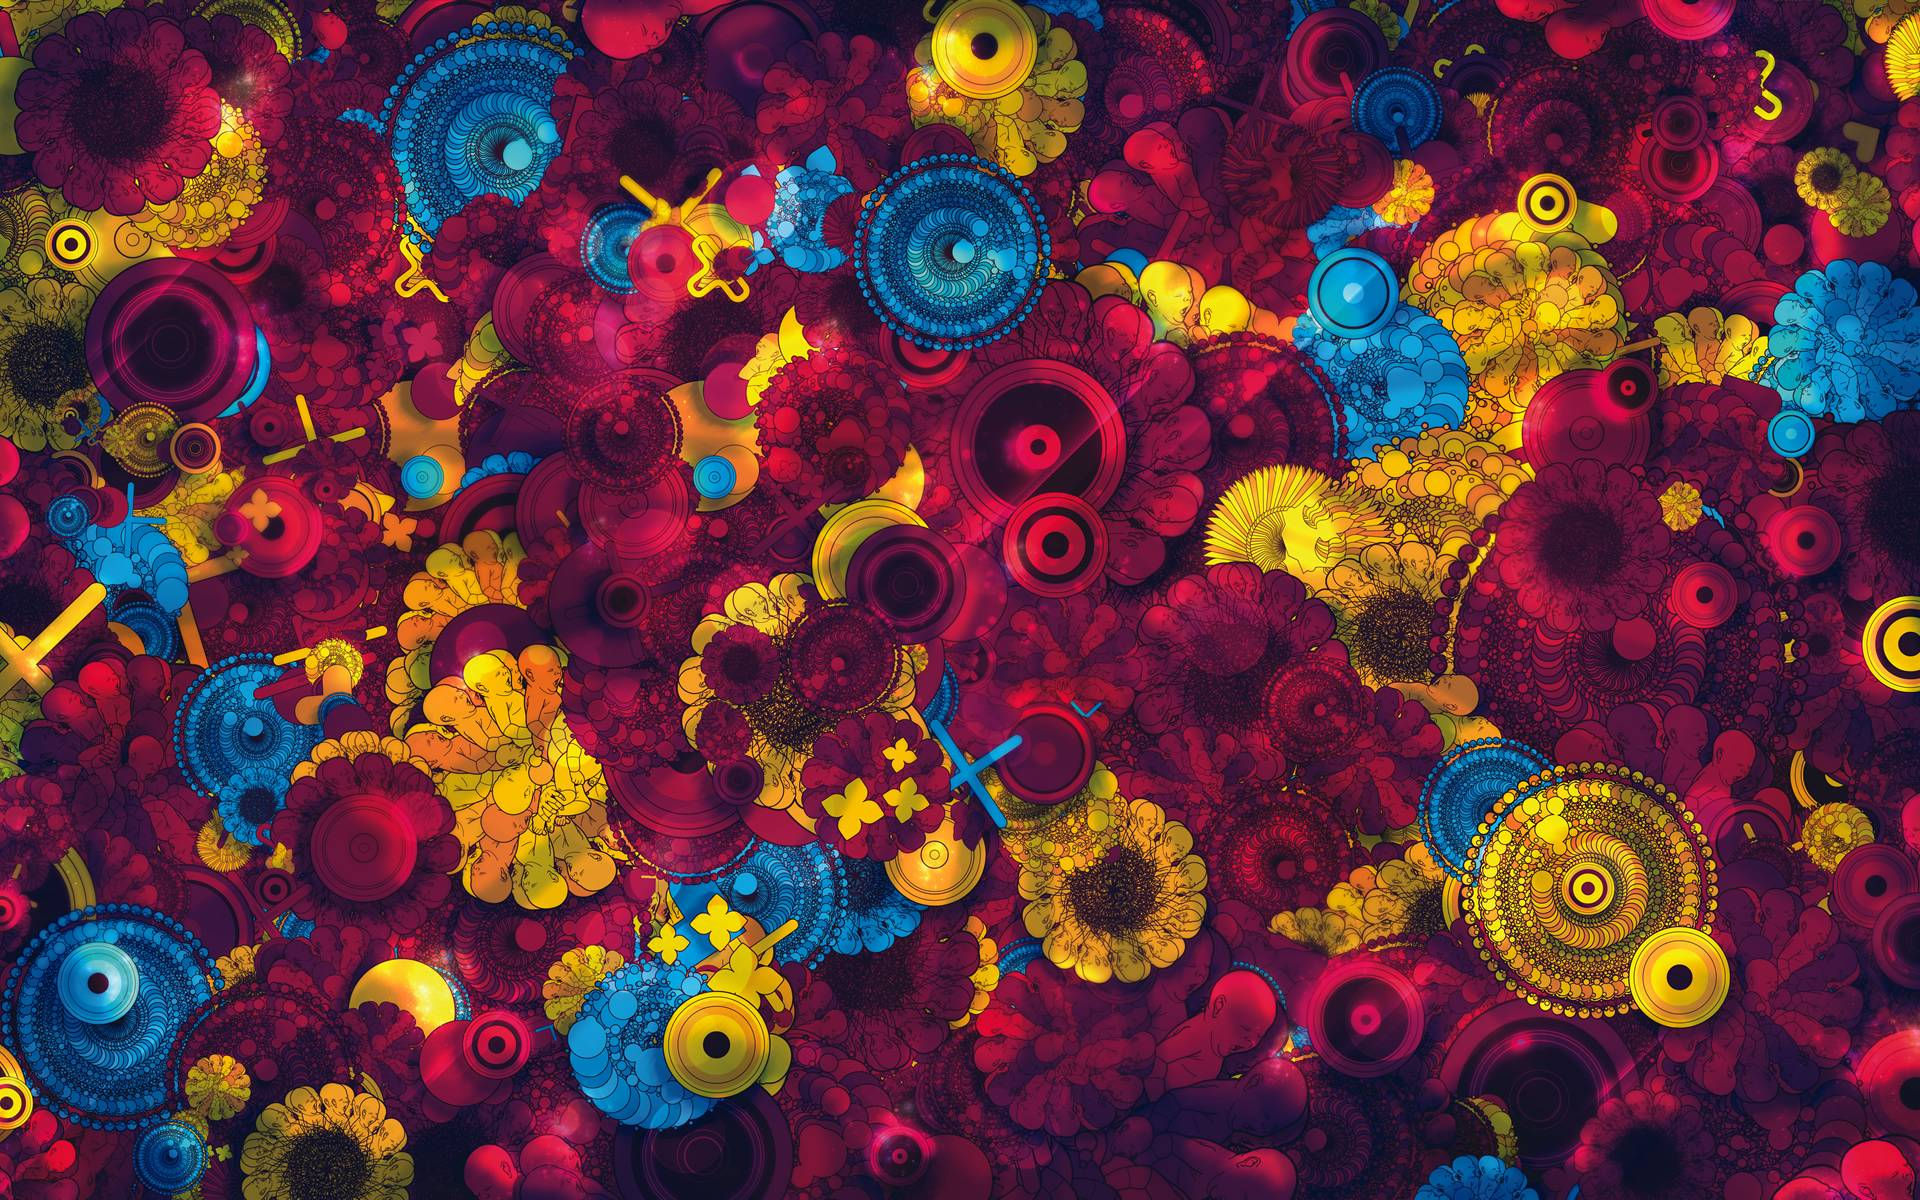 Psychedelic HD Wallpapers 1920x1200